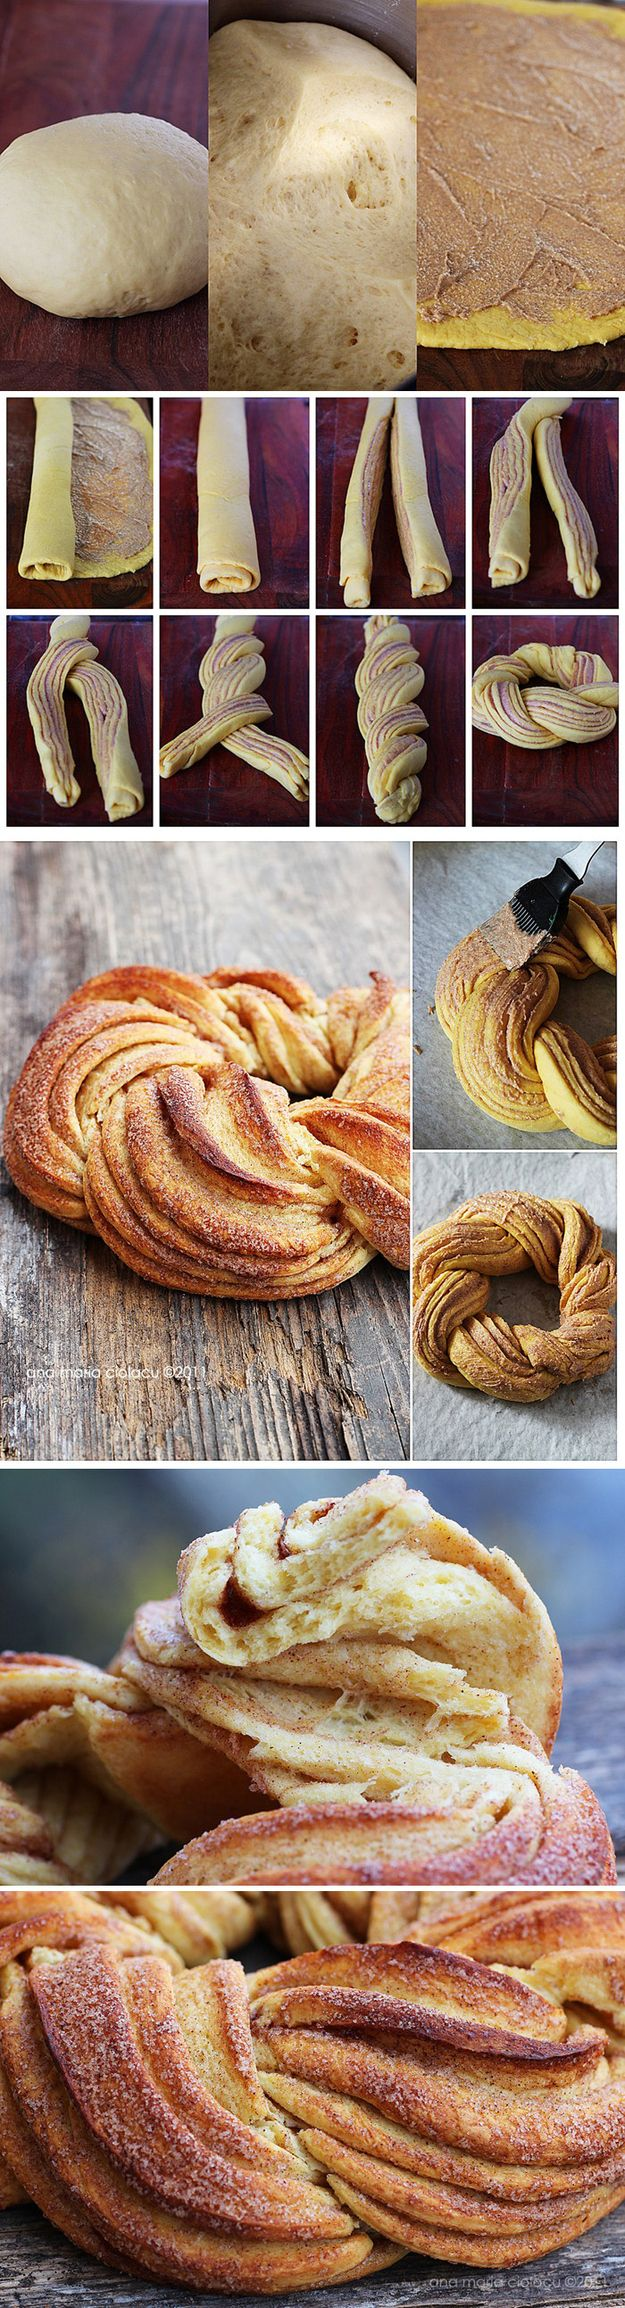 Twist Bread pattern. Make it with any filling, this one is dark spices and brown sugar but I'm going to make different versions. It just looks great.  Make with canned/frozen dough (crescent, biscuit, pastry)  Idea from Estonian Kringel bread